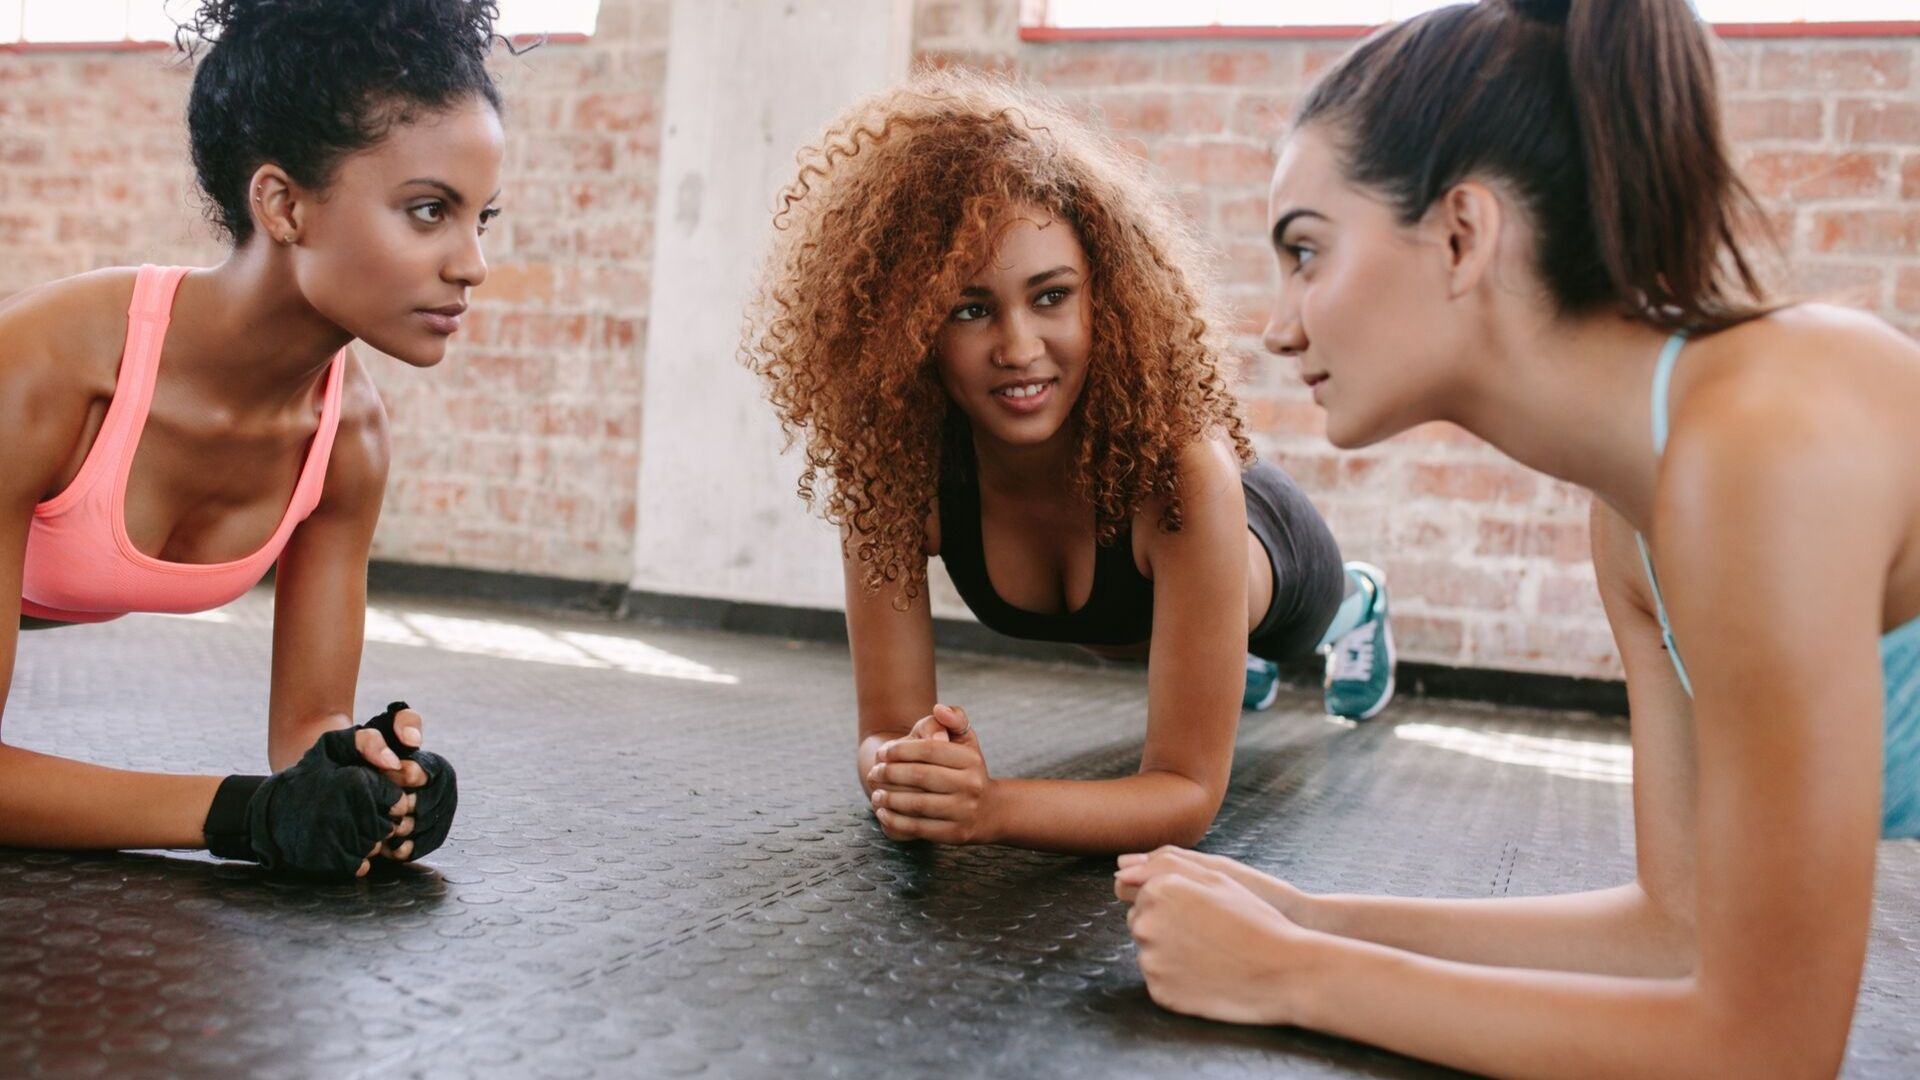 8 Essential Fitness Tips For Busy Women #womenshealth #fatlosstips #weightlosstips #weightloss #healthy